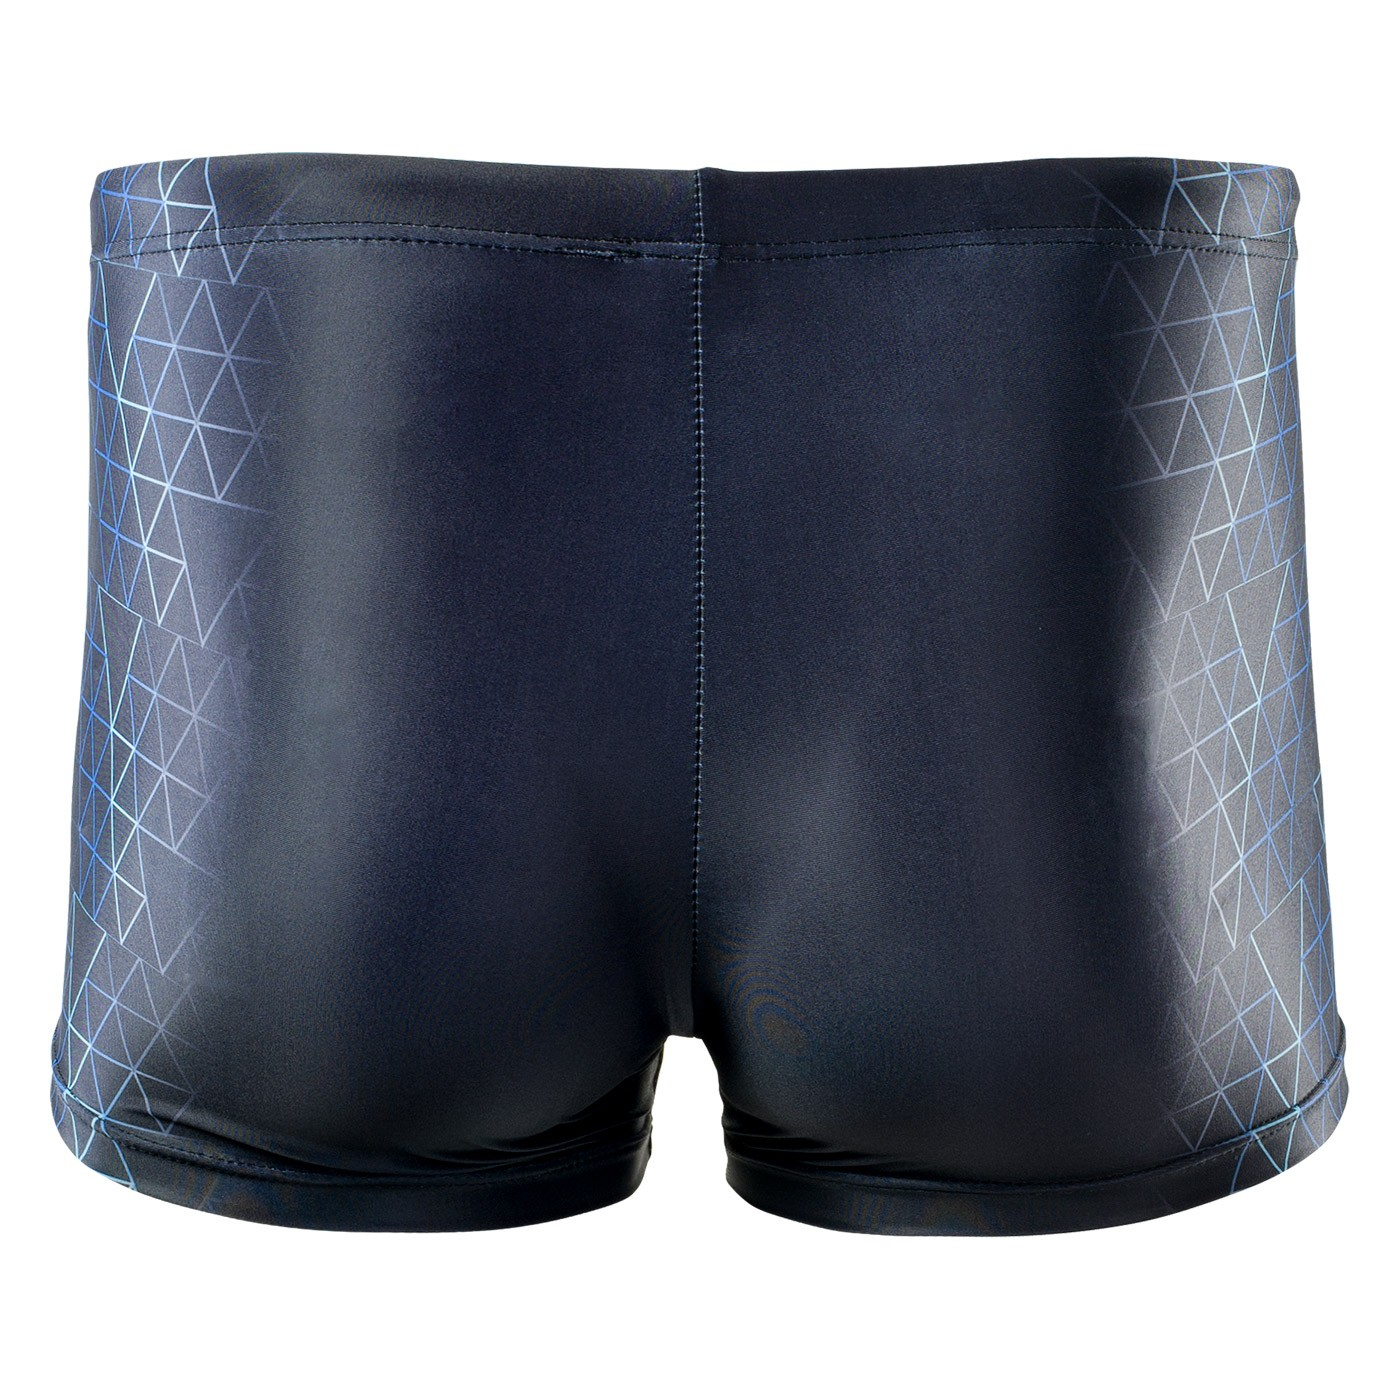 Swimming boxers Adis